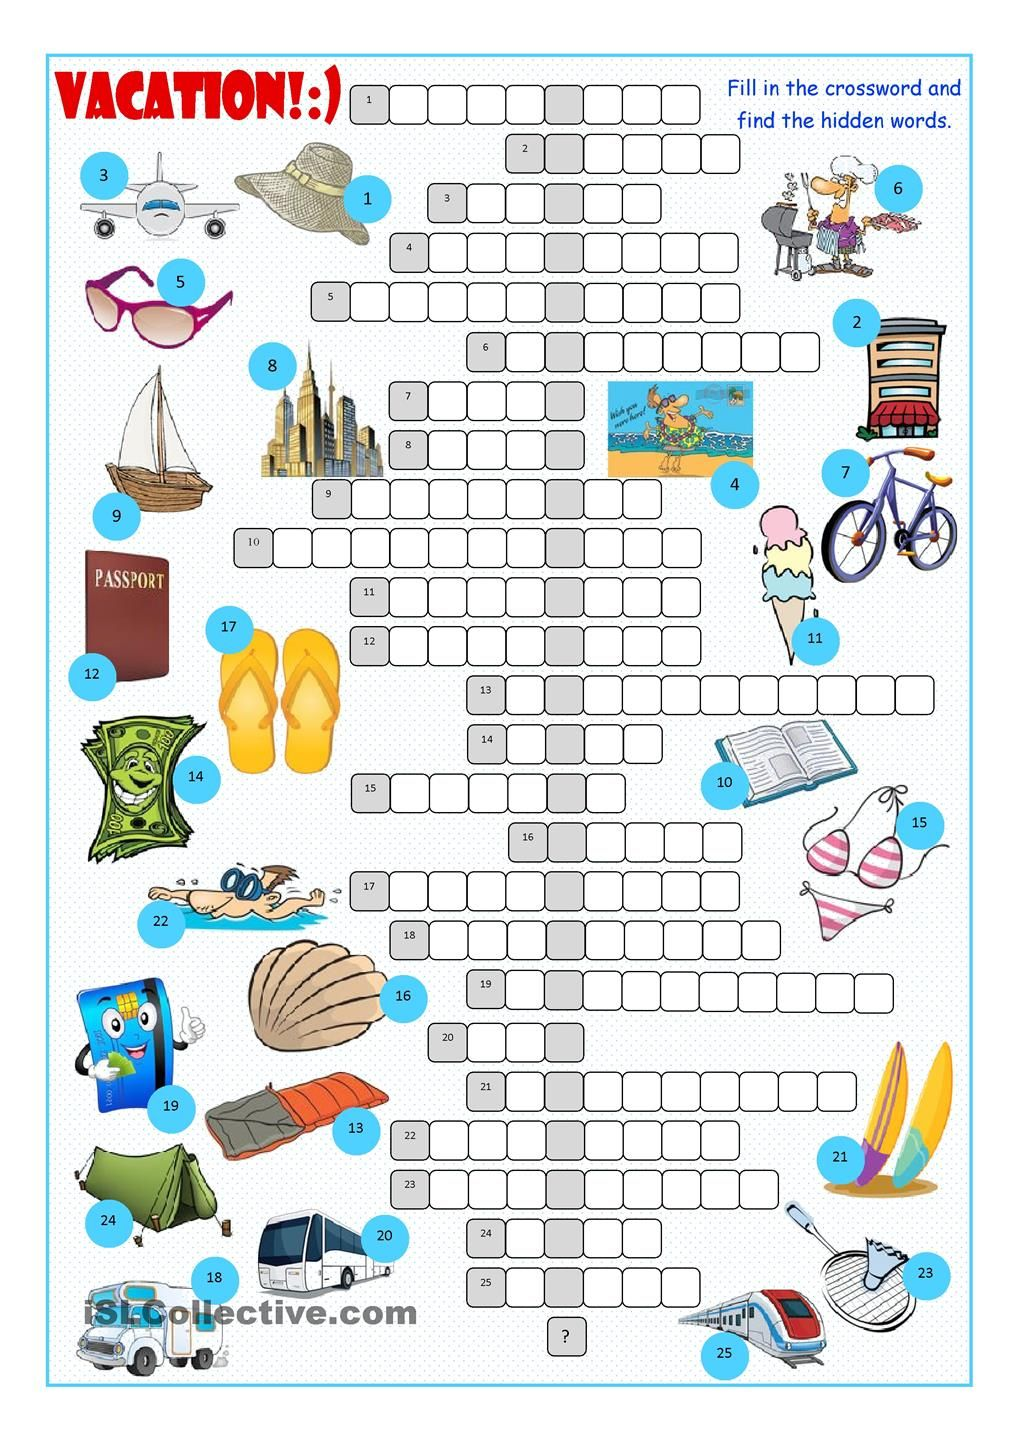 Vacation Crossword Puzzle (With images) Crossword